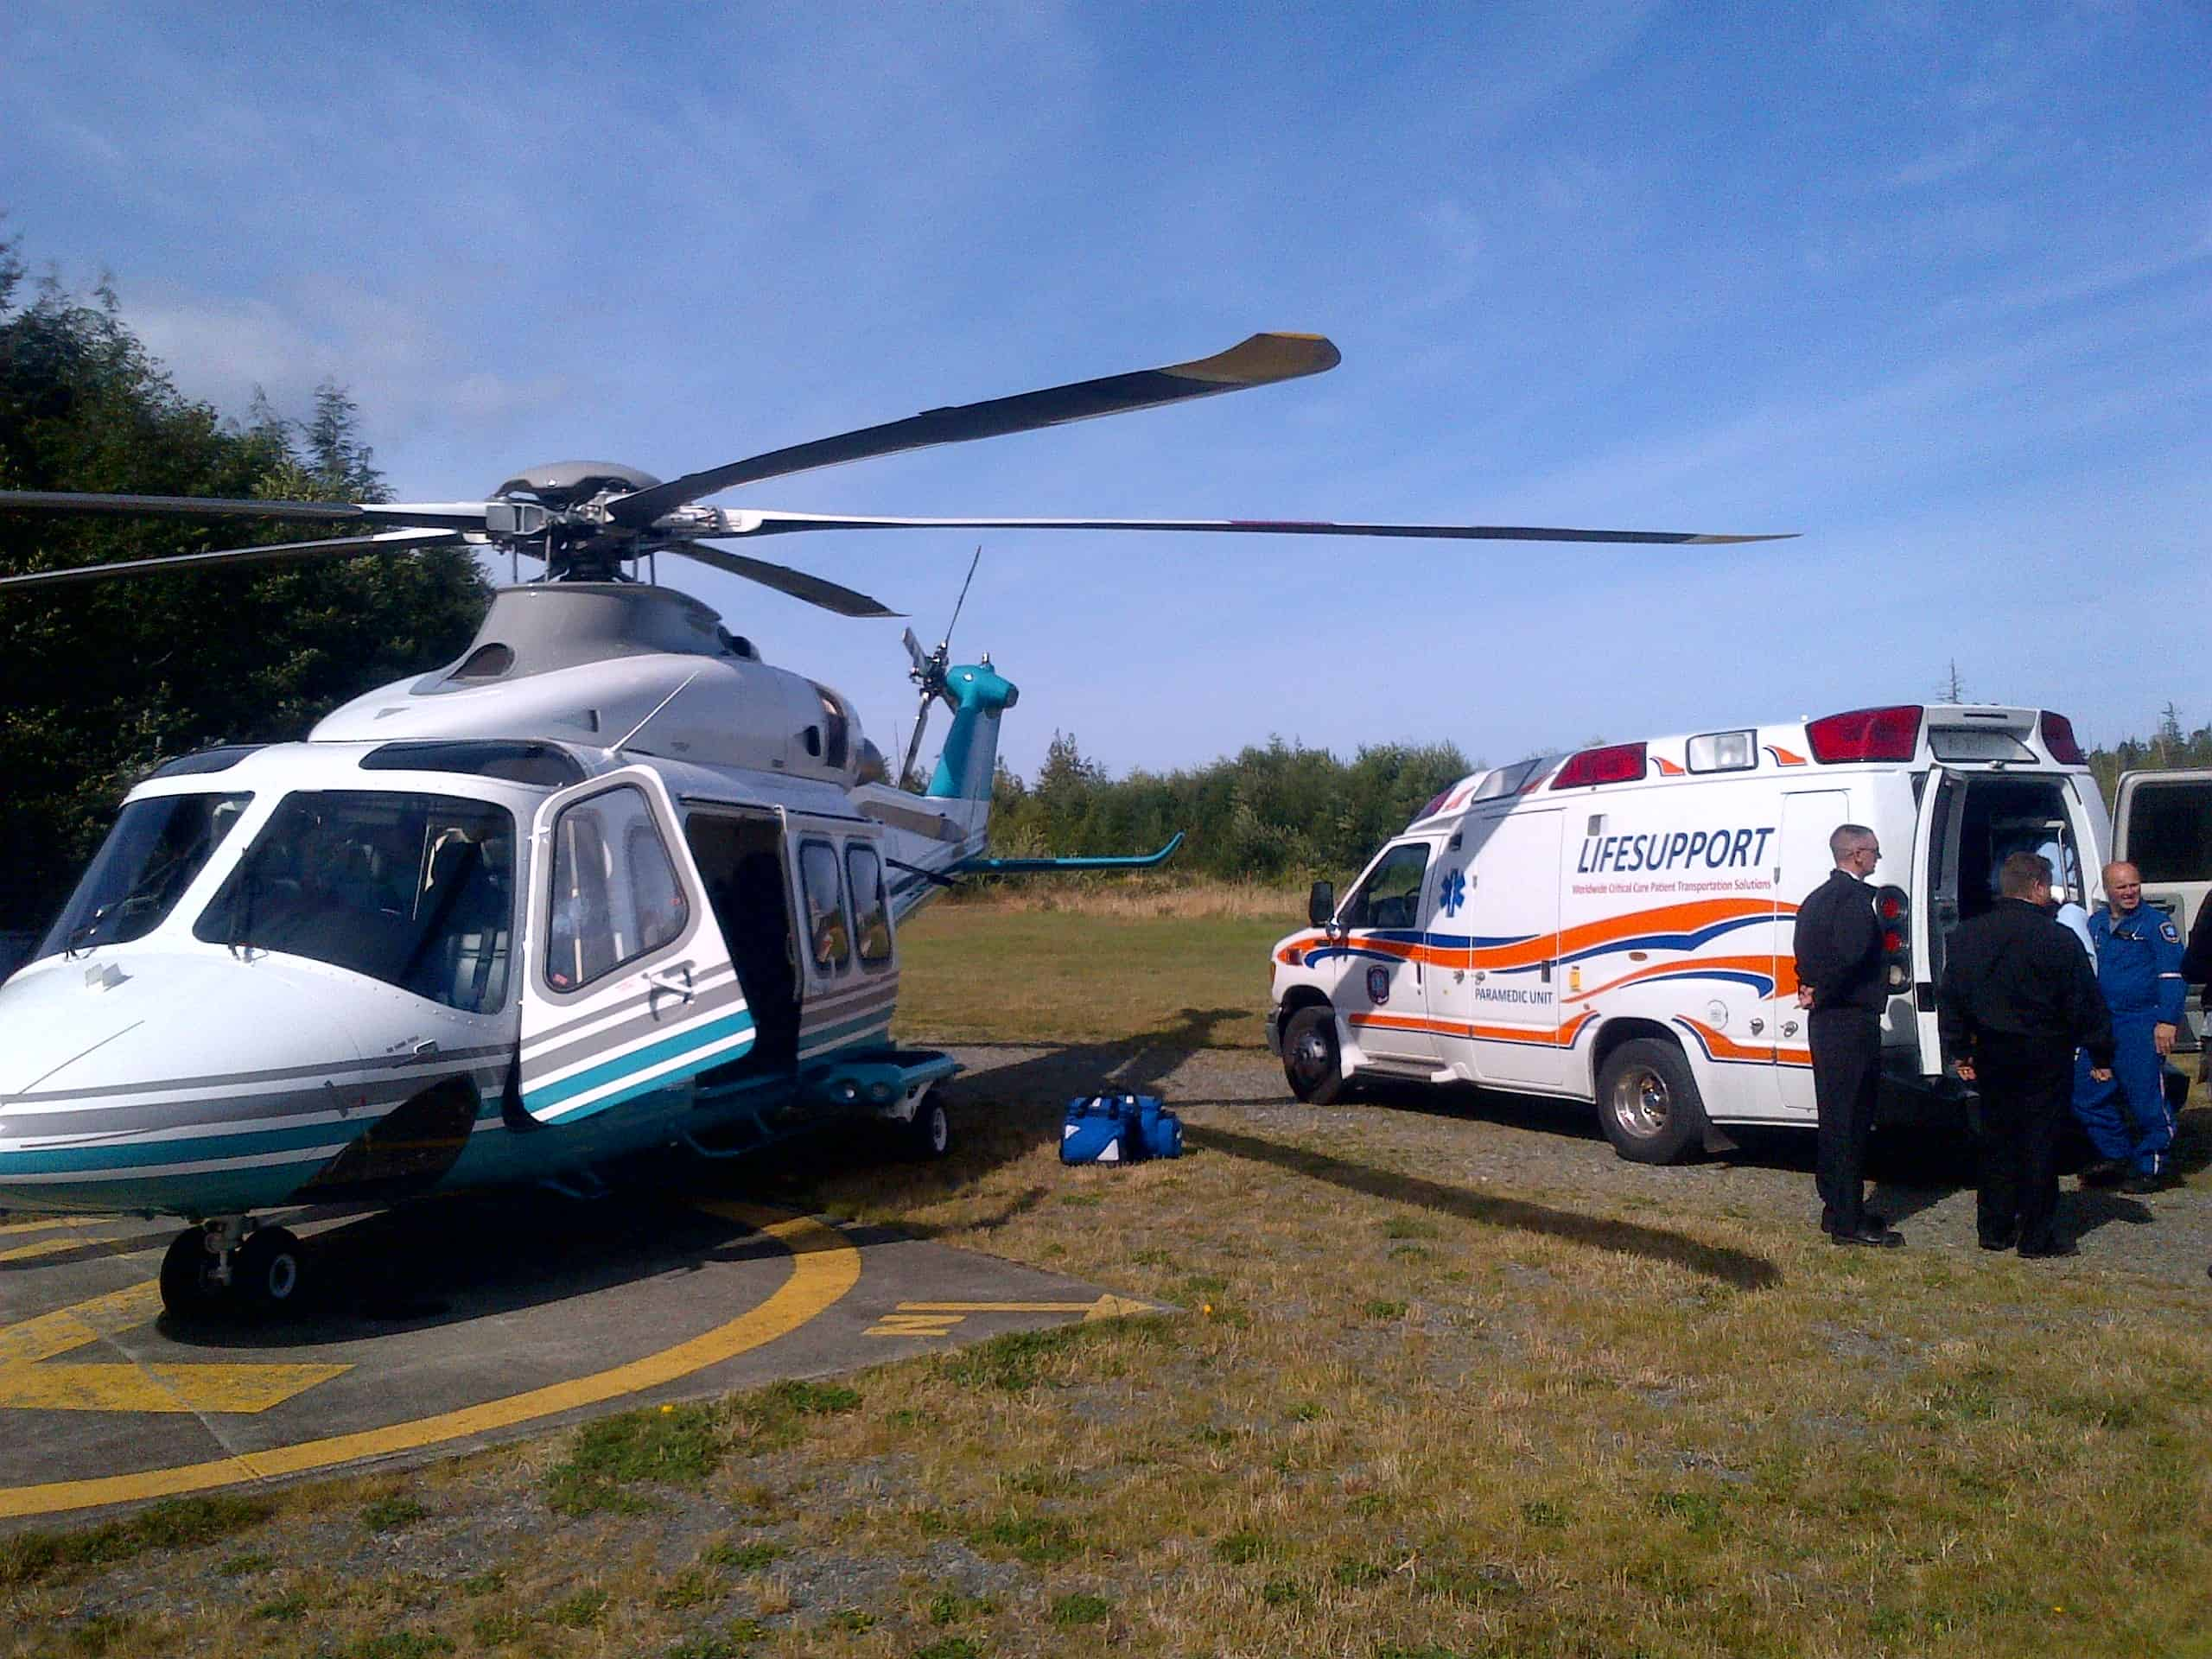 Critical care helicopter and ambulance